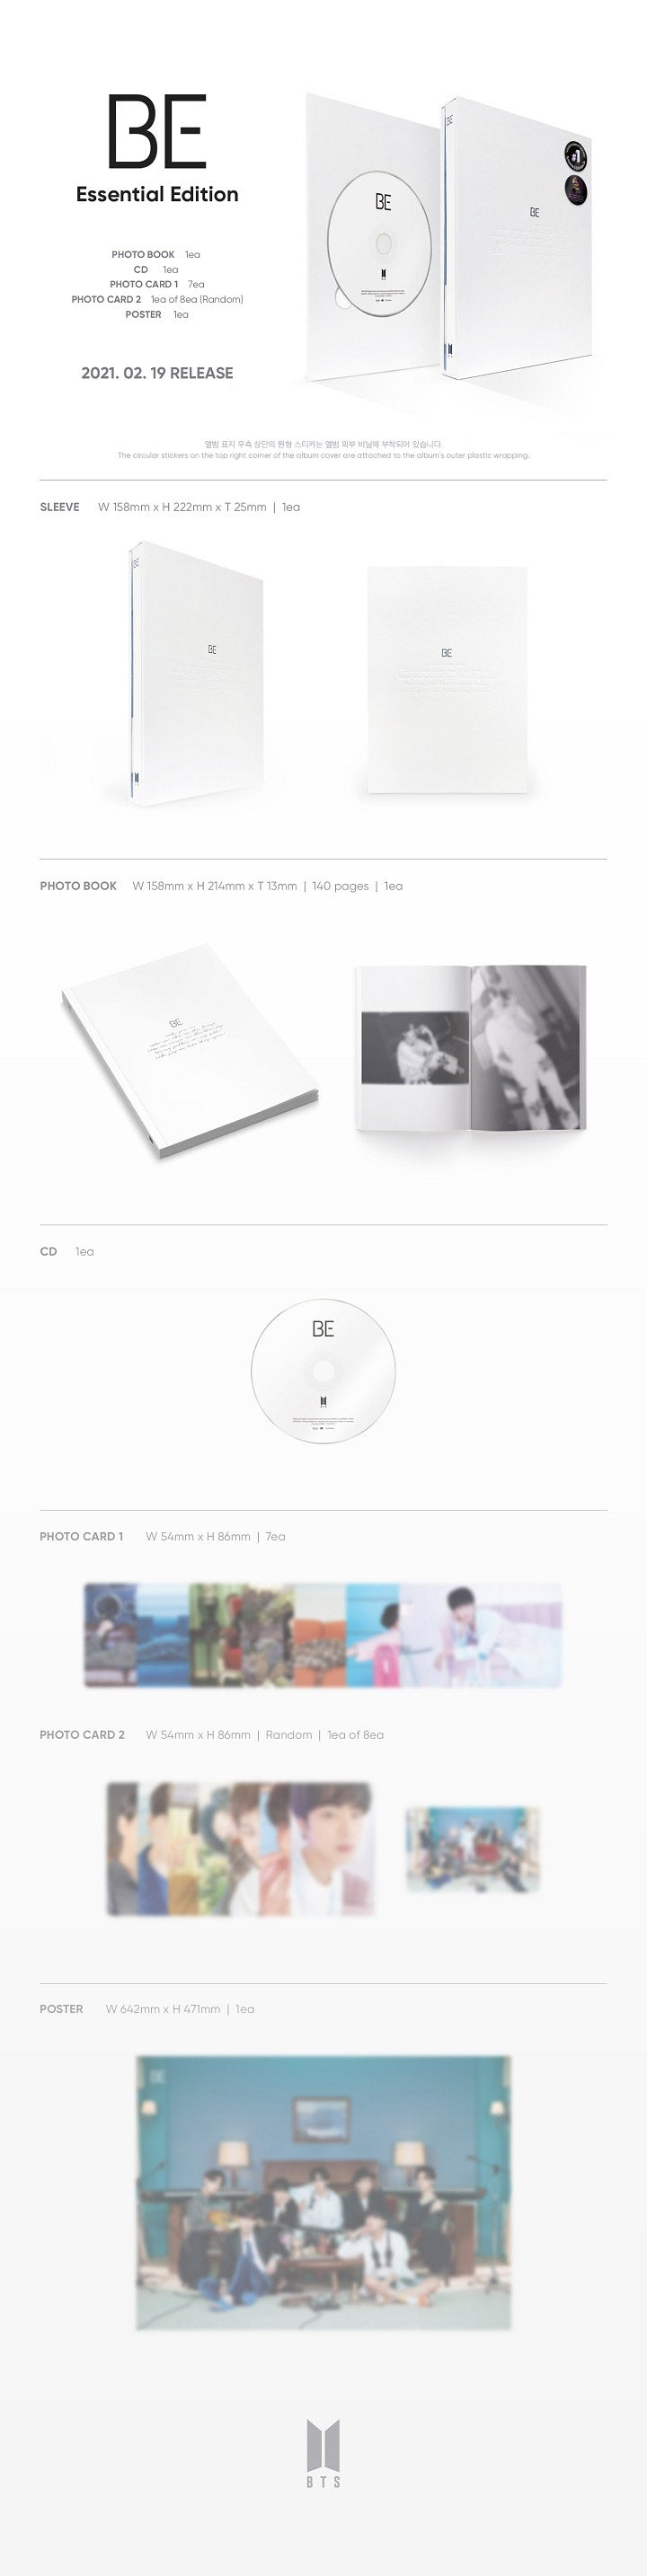 BTS - BE Essential Edition